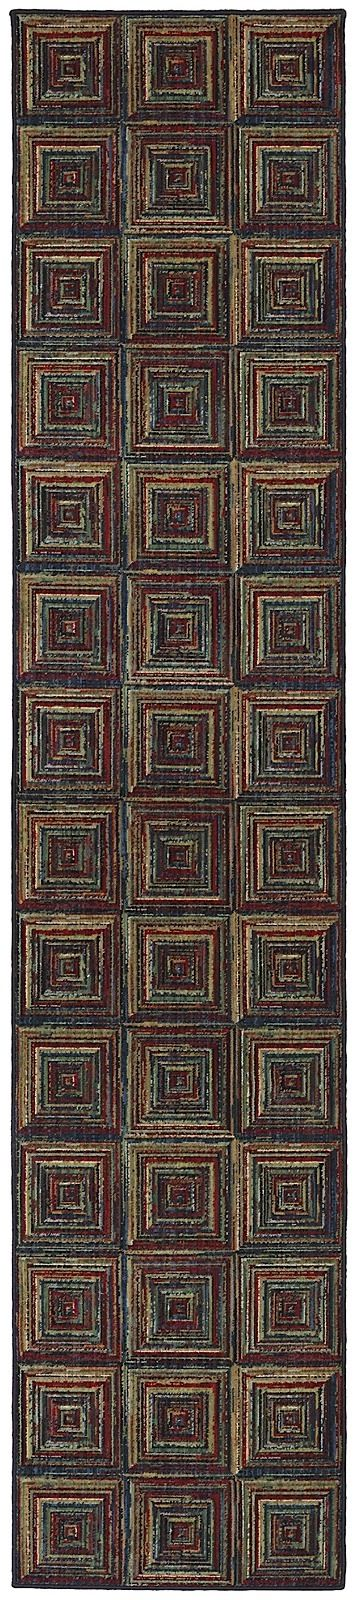 karastan woolrich contemporary area rug collection